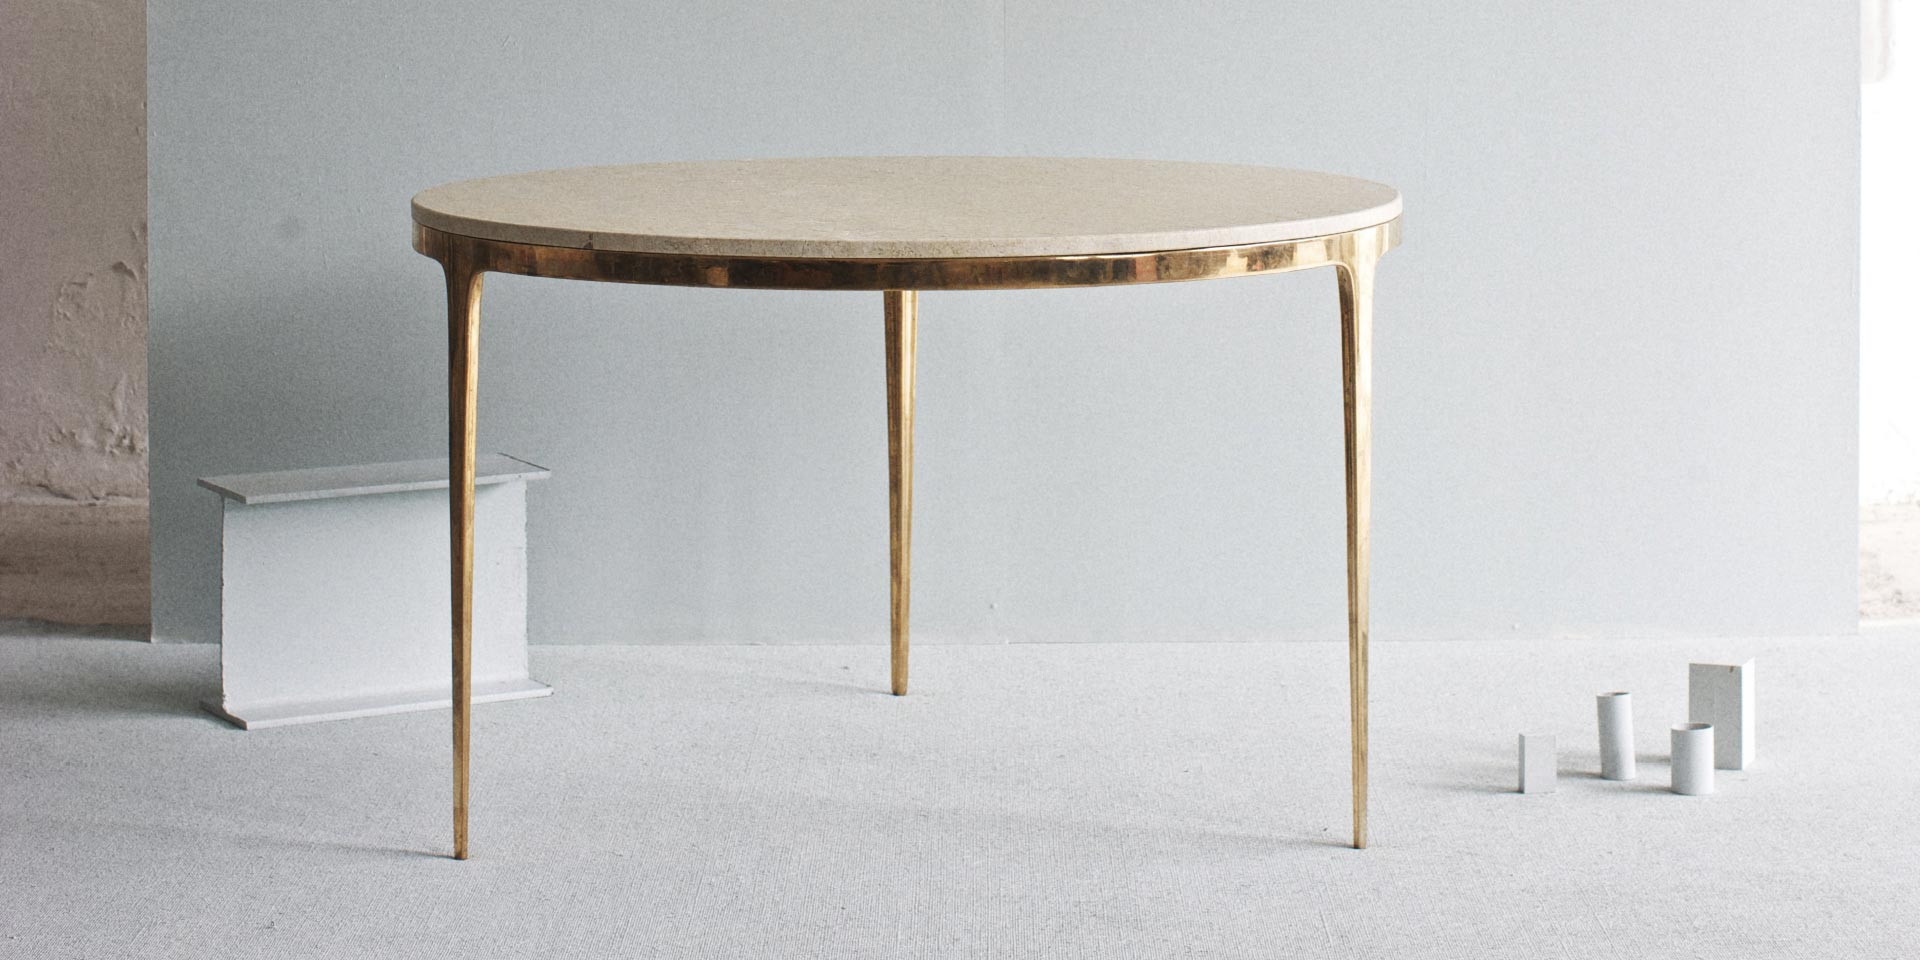 bronze-round-table-2